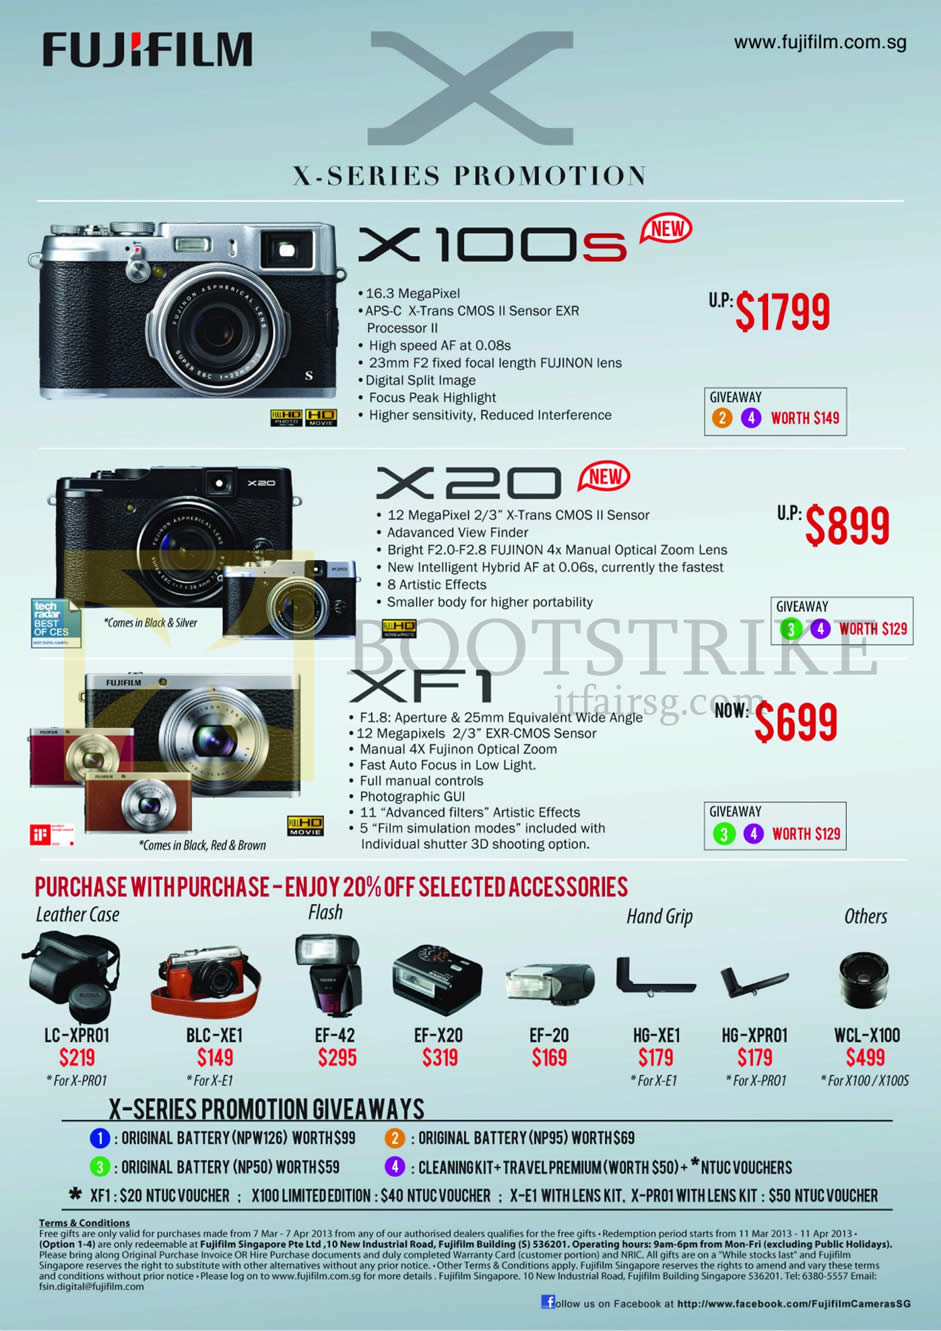 IT SHOW 2013 price list image brochure of Fujifilm Digital Cameras X Series X100s, X20, XF1, Purchase With Purchase Leather Case, Flash, Hand Grip